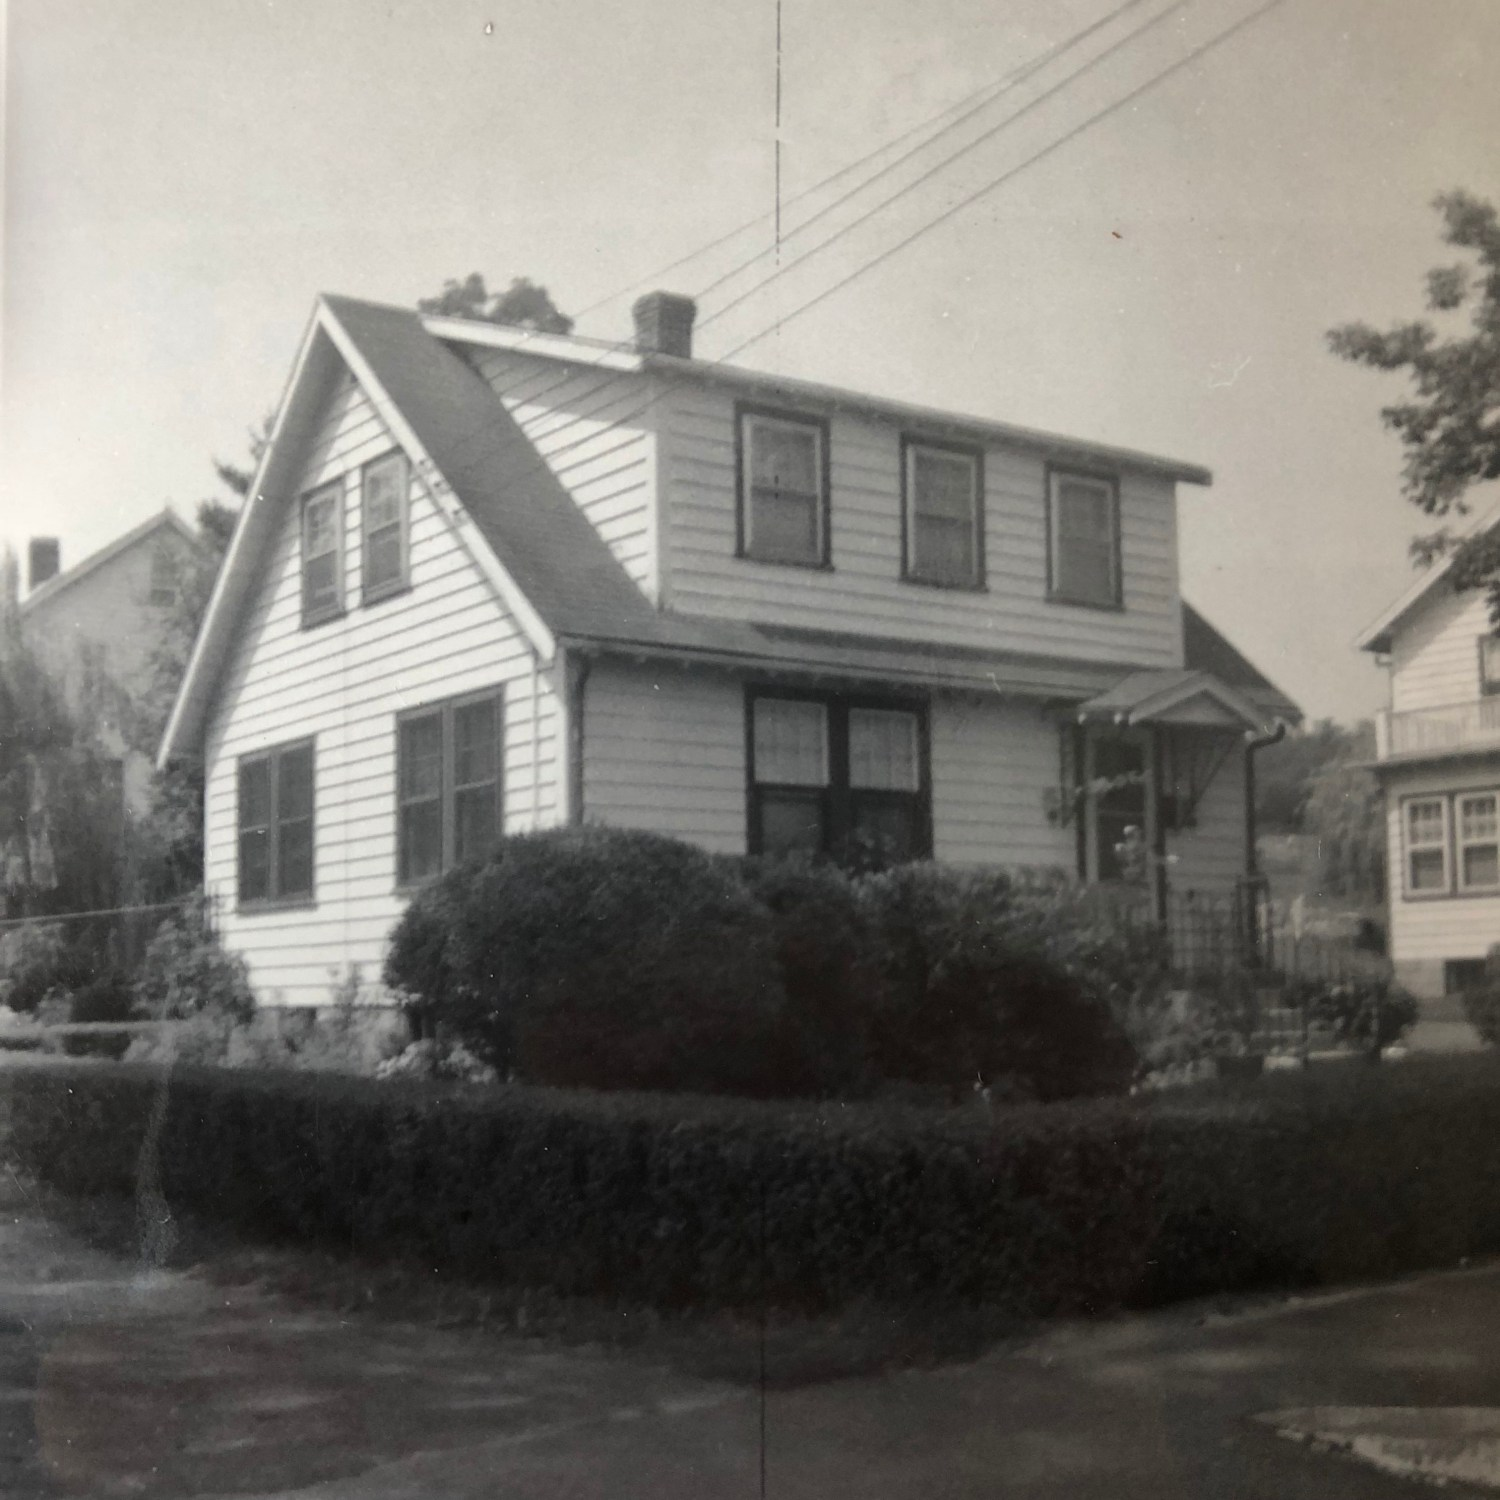 Regan house, c 1950, Burlington MA